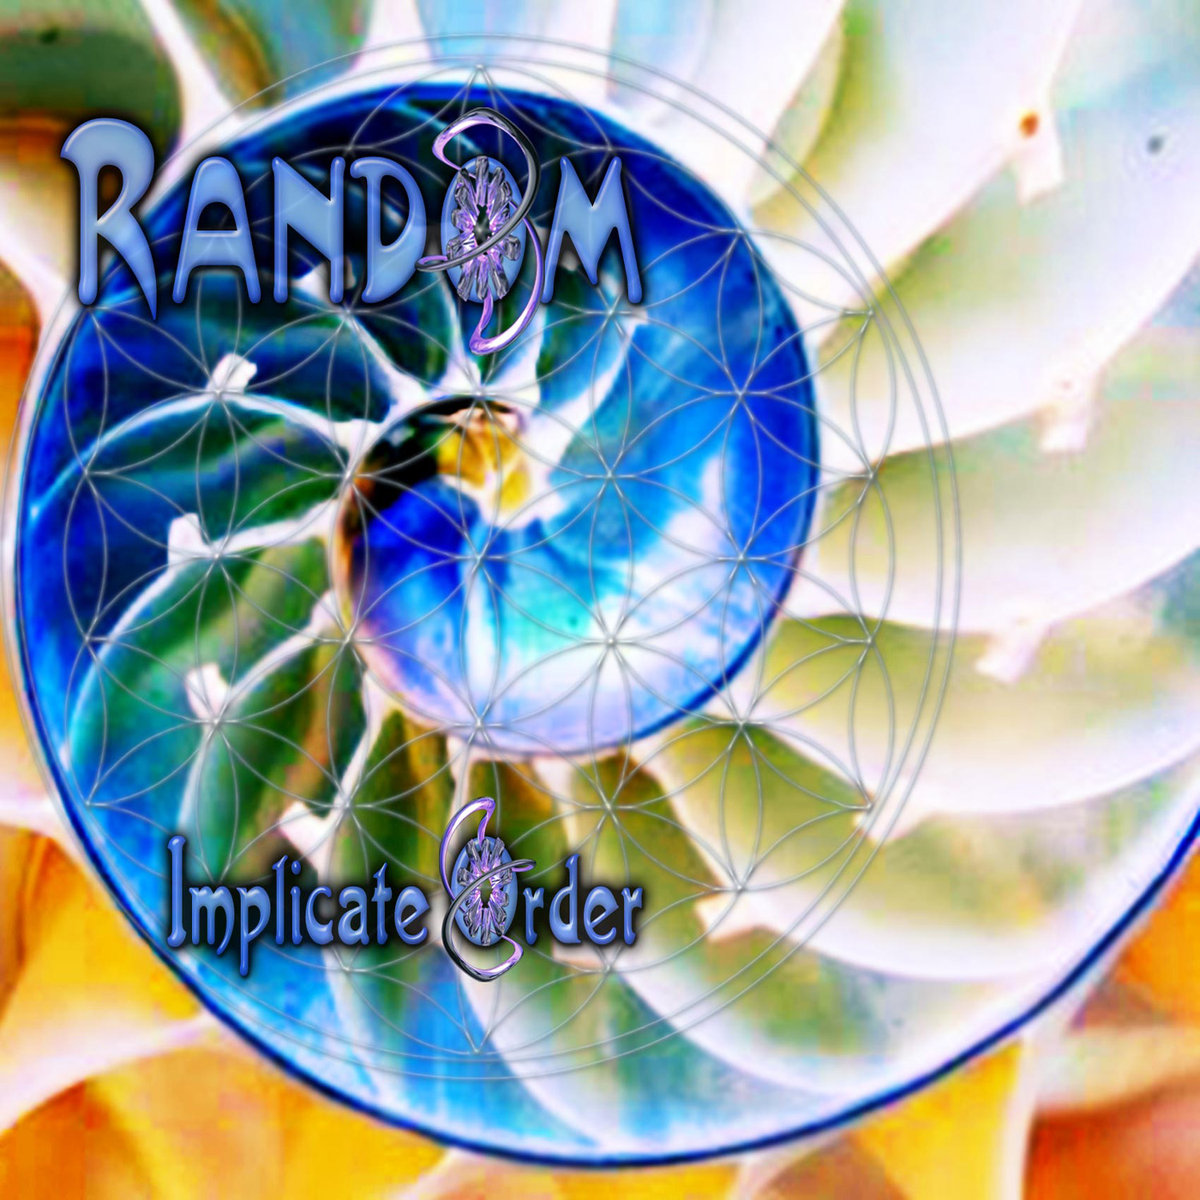 Random - The Implicate Order @ 'The Implicate Order' album (electronic, goa)